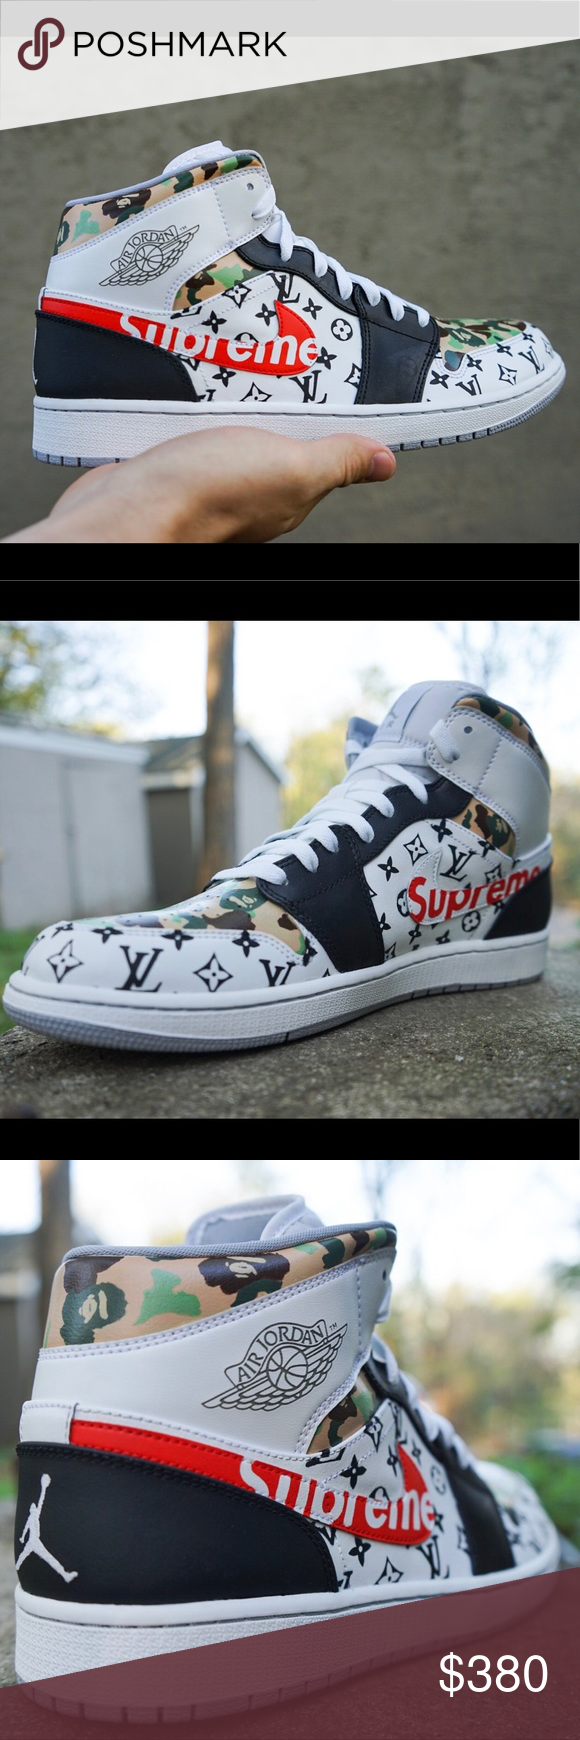 "654fe9035b4 Jordan 1's custom ""hypebeast"" Supreme x Bape x LV ""Hypebeast"" Custom Jordan  1's Supreme x Bape x LV made to order! For lower prices checkout my website  in ..."